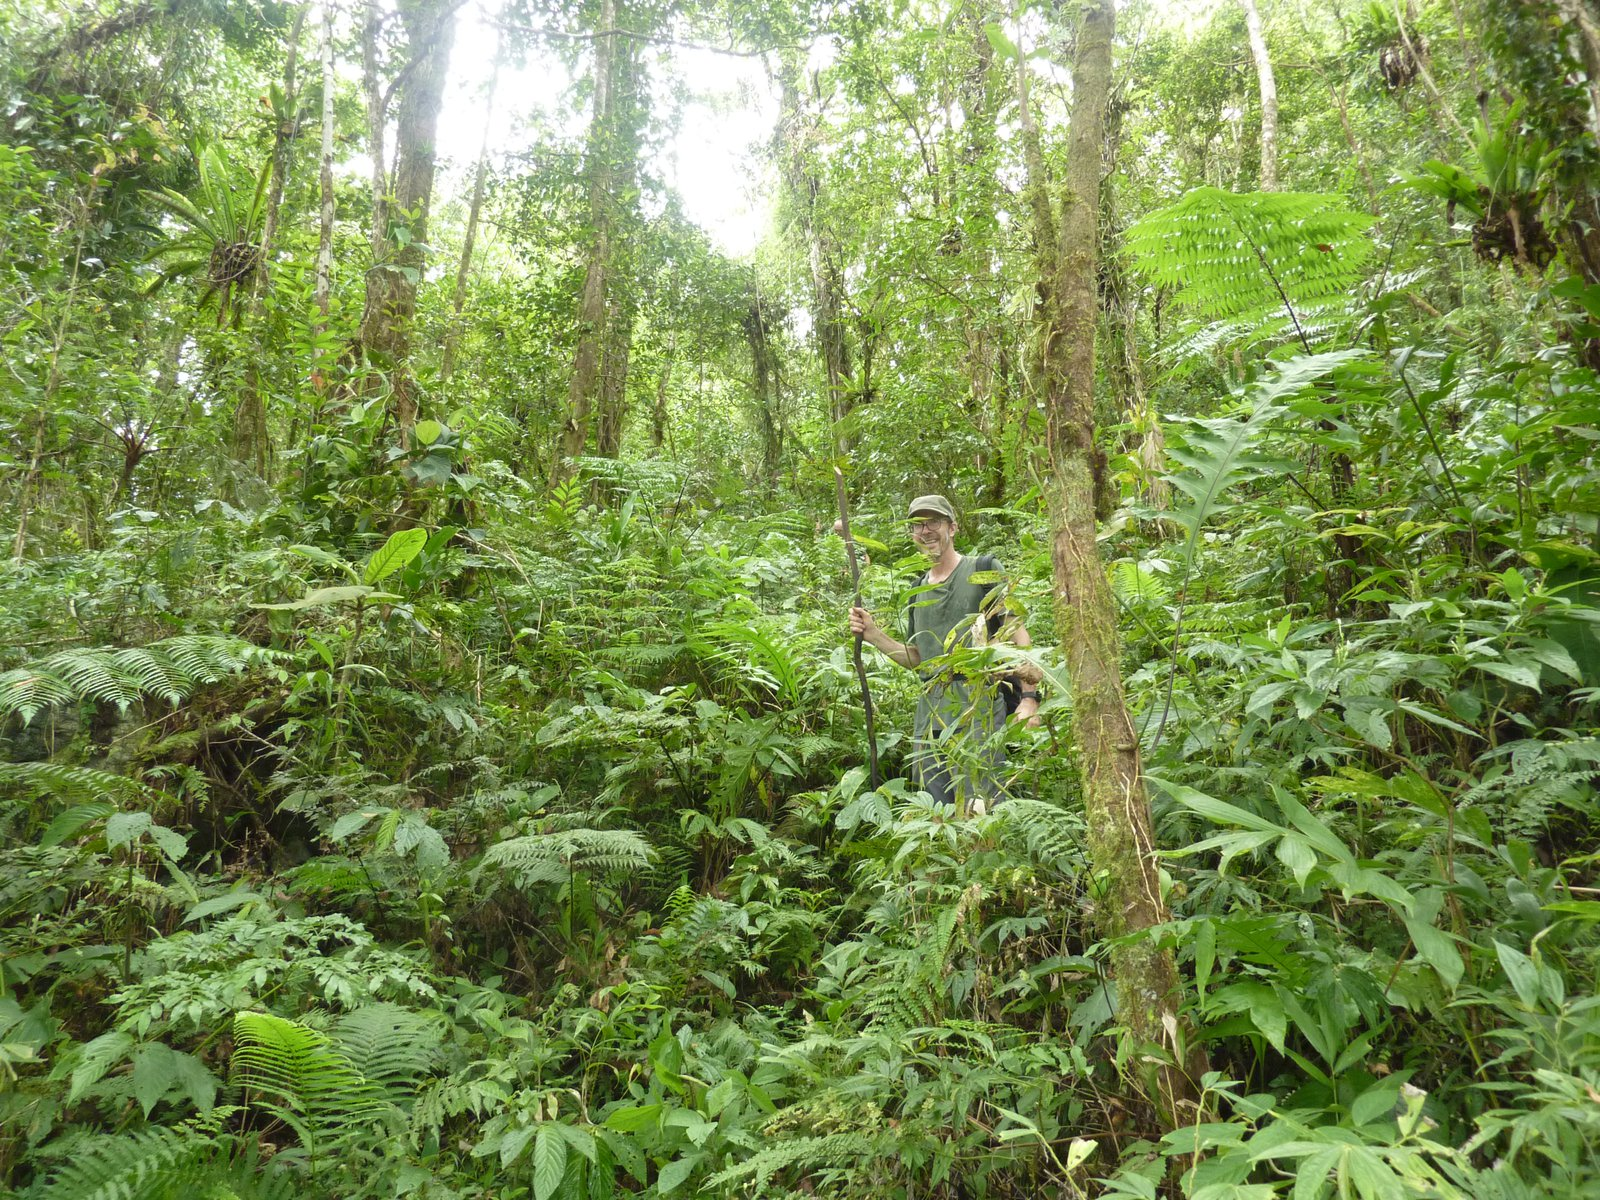 Dr Andrew Mitchell trekking through the forest, Malaita.